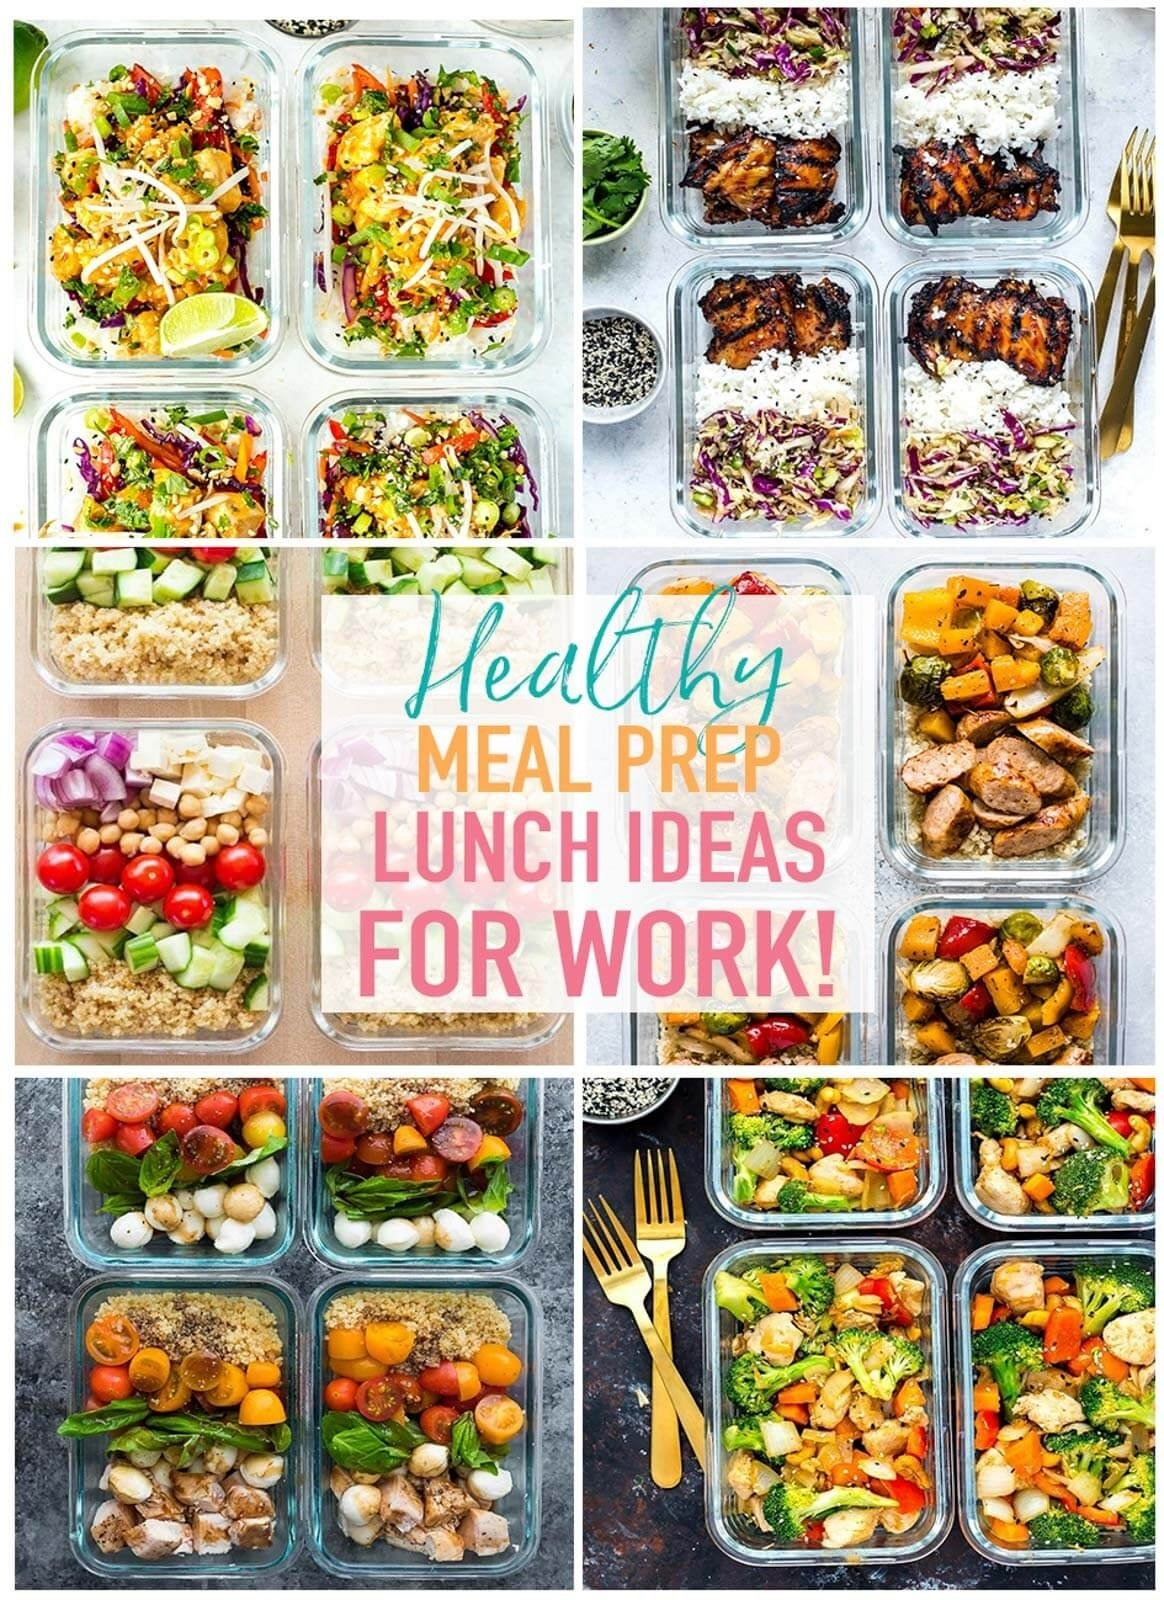 10 Fashionable Healthy And Easy Lunch Ideas 20 easy healthy meal prep lunch ideas for work the girl on bloor 5 2020